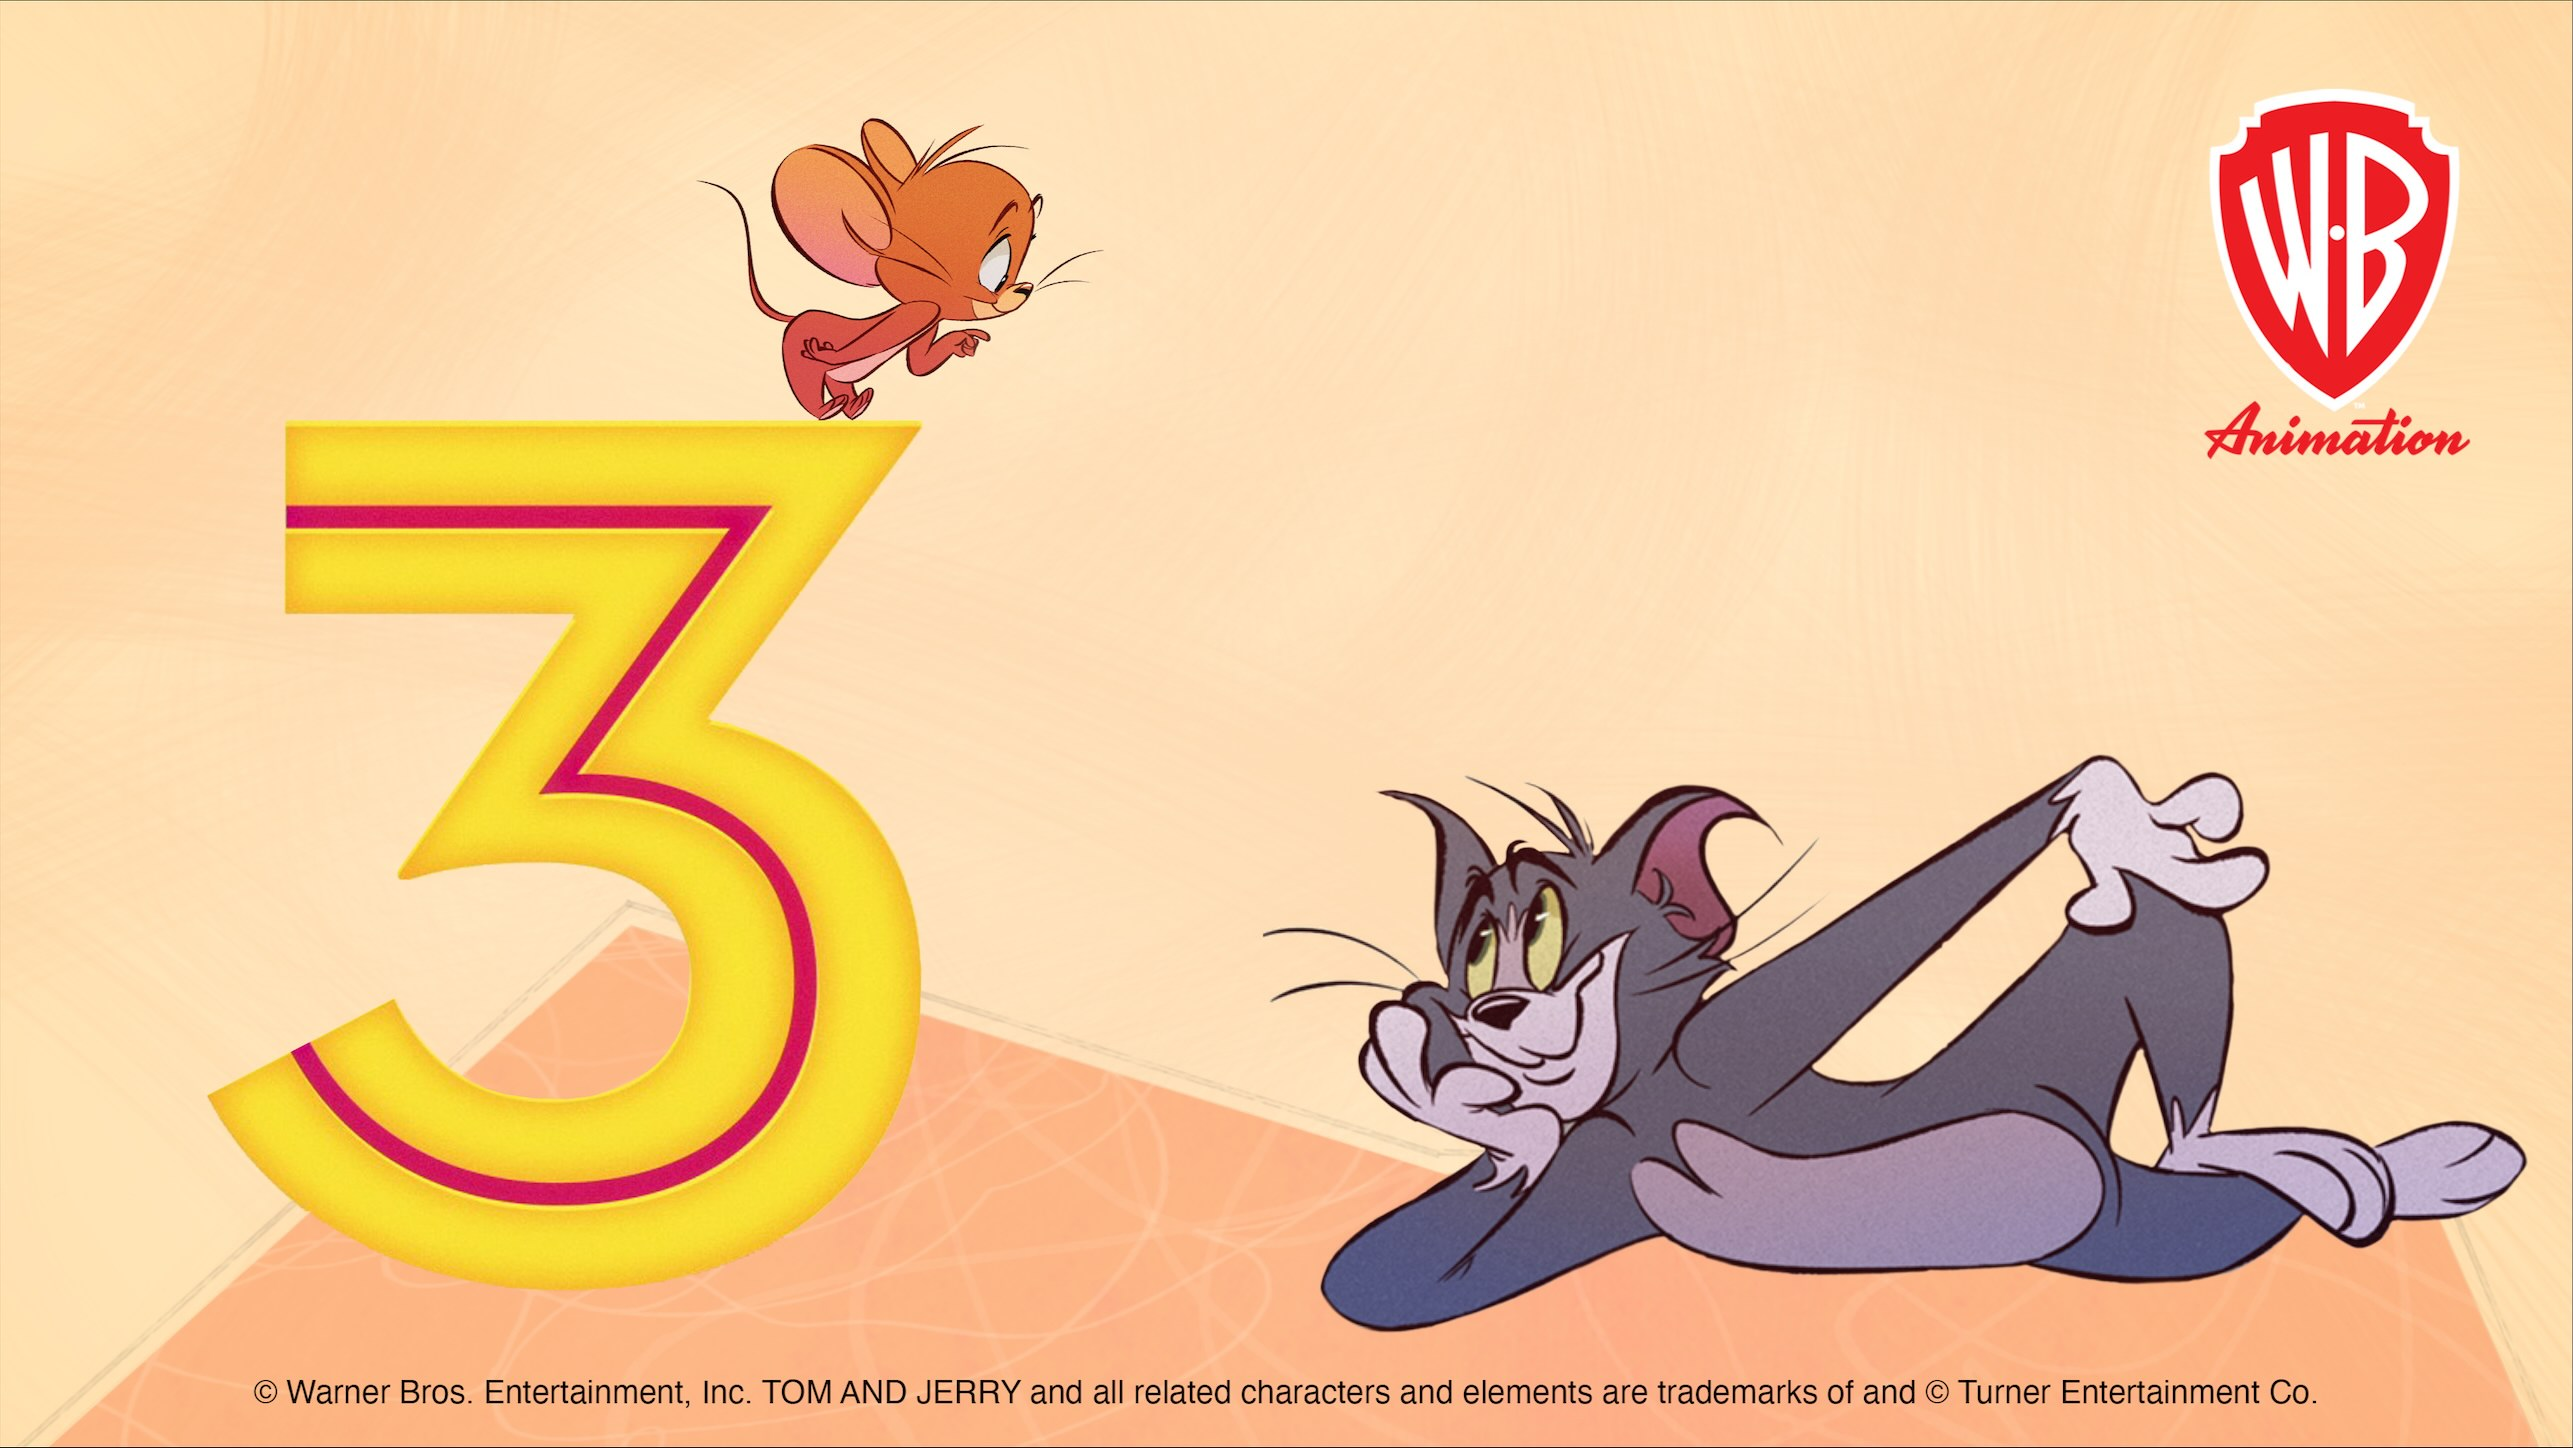 Tom and Jerry Time Greenlight Announcement Image